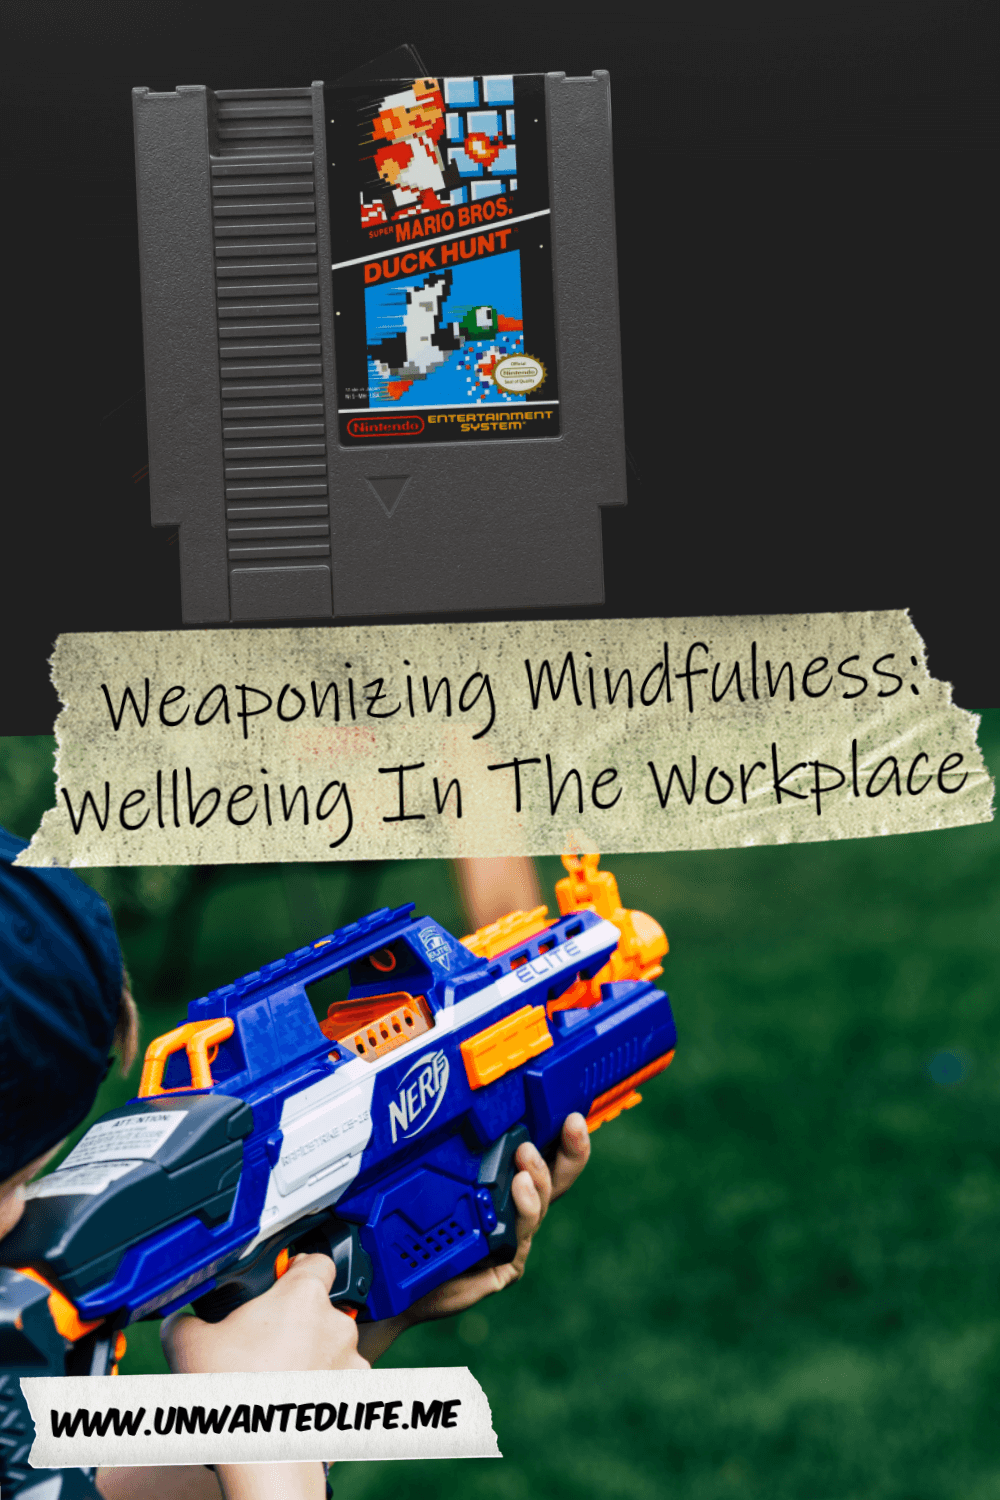 The picture is split in two with the top image being of a Nintendo NES cartridge for the combo games Super Mario Bros. and Duck Hunt and the bottom image being of a kid playing with a Nerf gun outside. The two images are separated by the article title - Weaponizing Mindfulness: Wellbeing In The Workplace